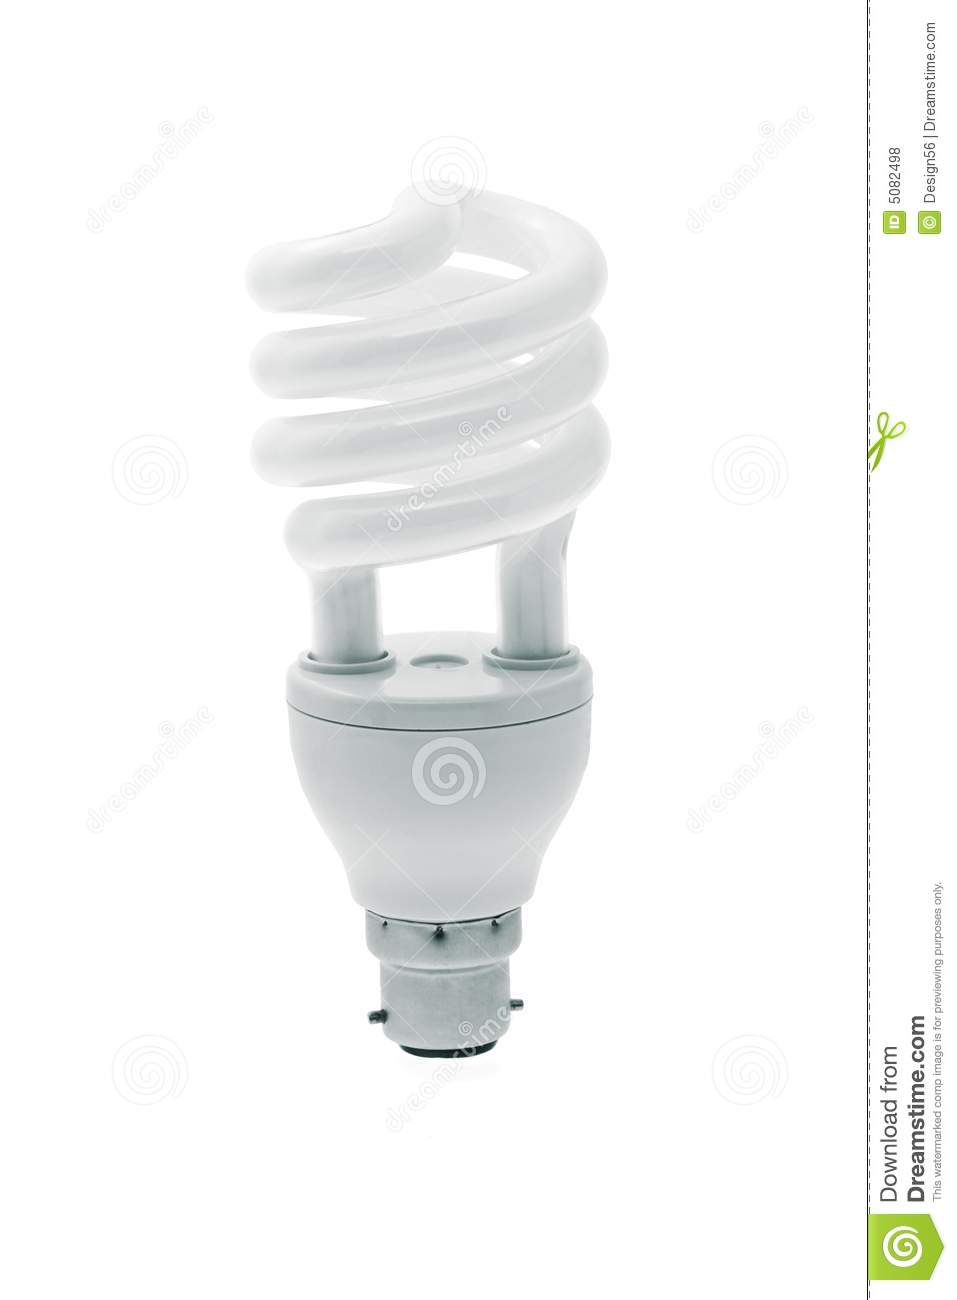 Spiral energy saving light bulb